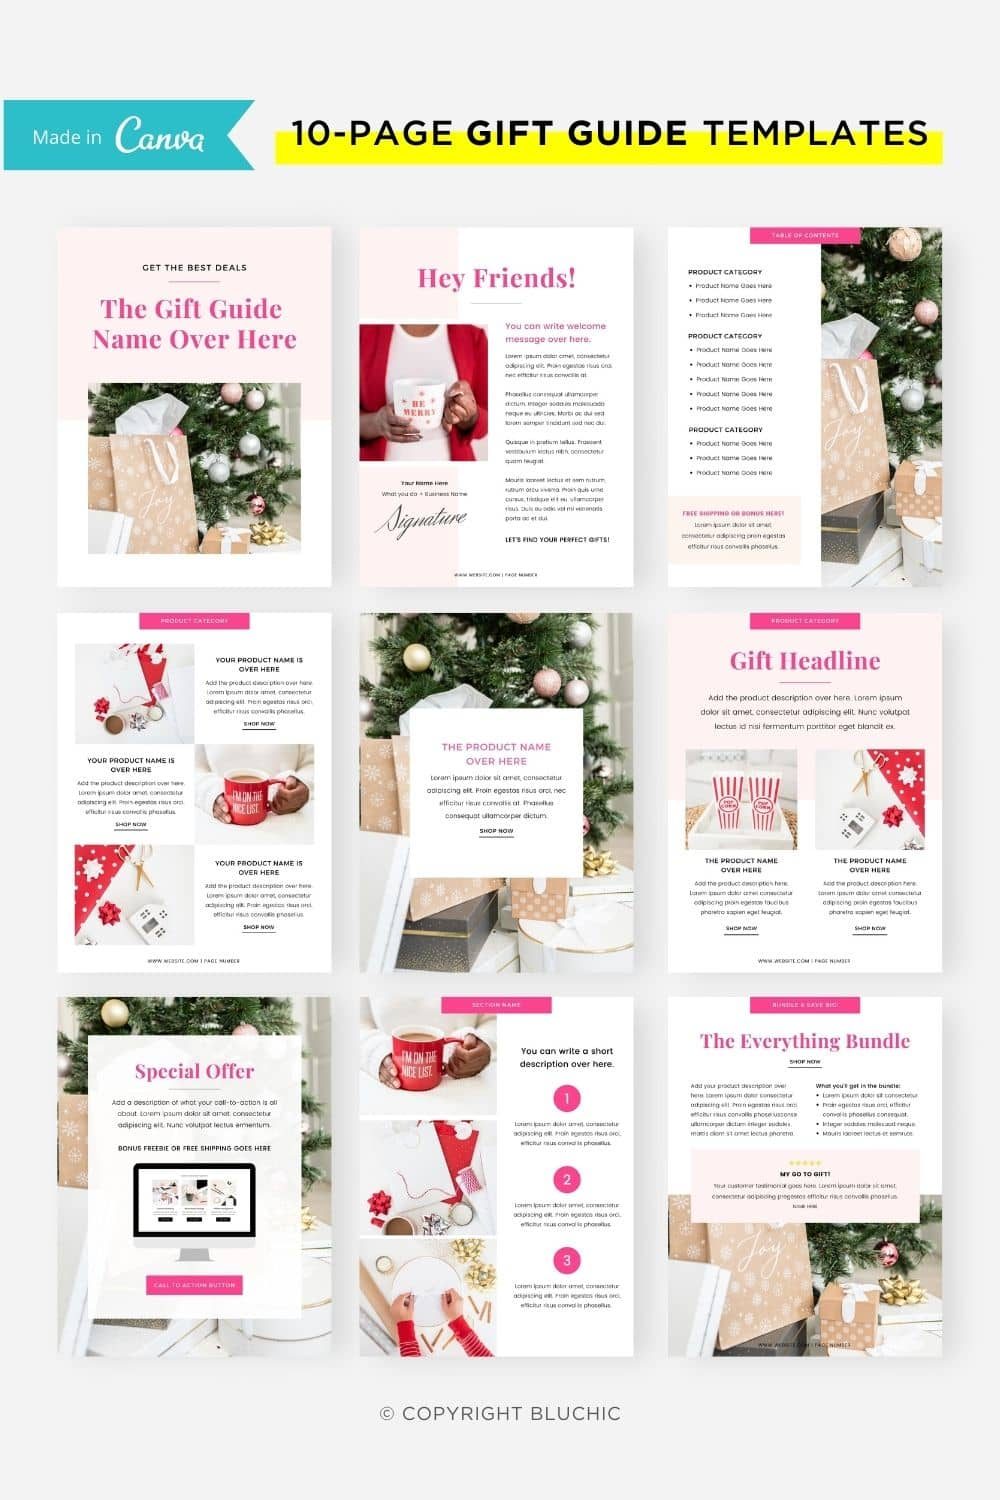 bluchic-canva-templates-gift -guide